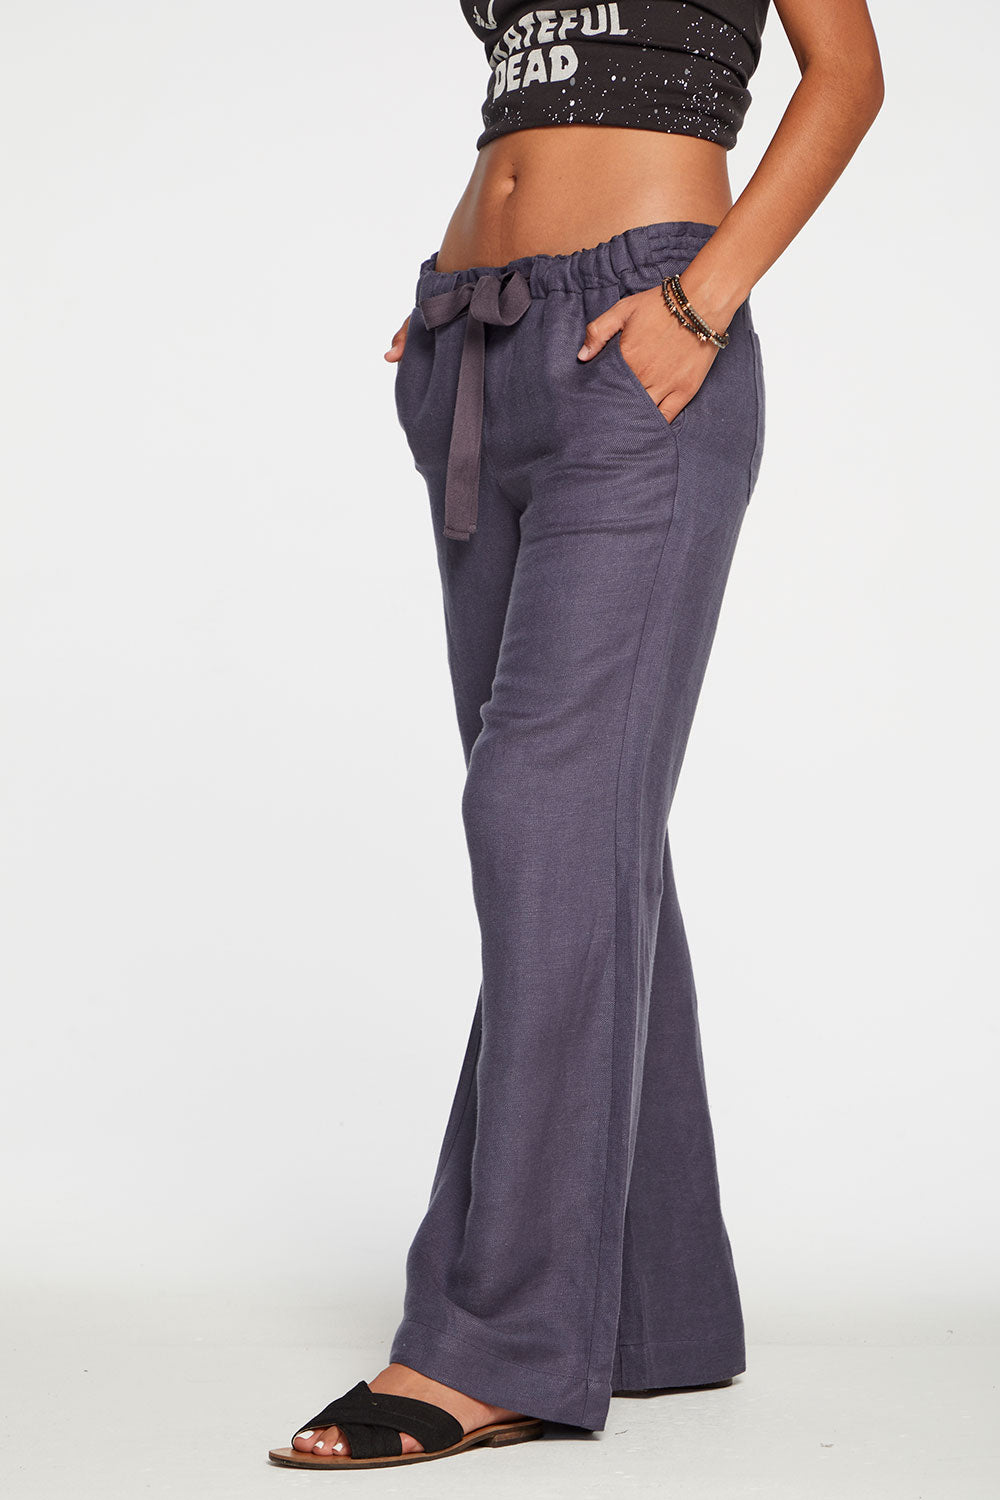 Beachy Linen Easy Drawstring Pant in Newport Blue